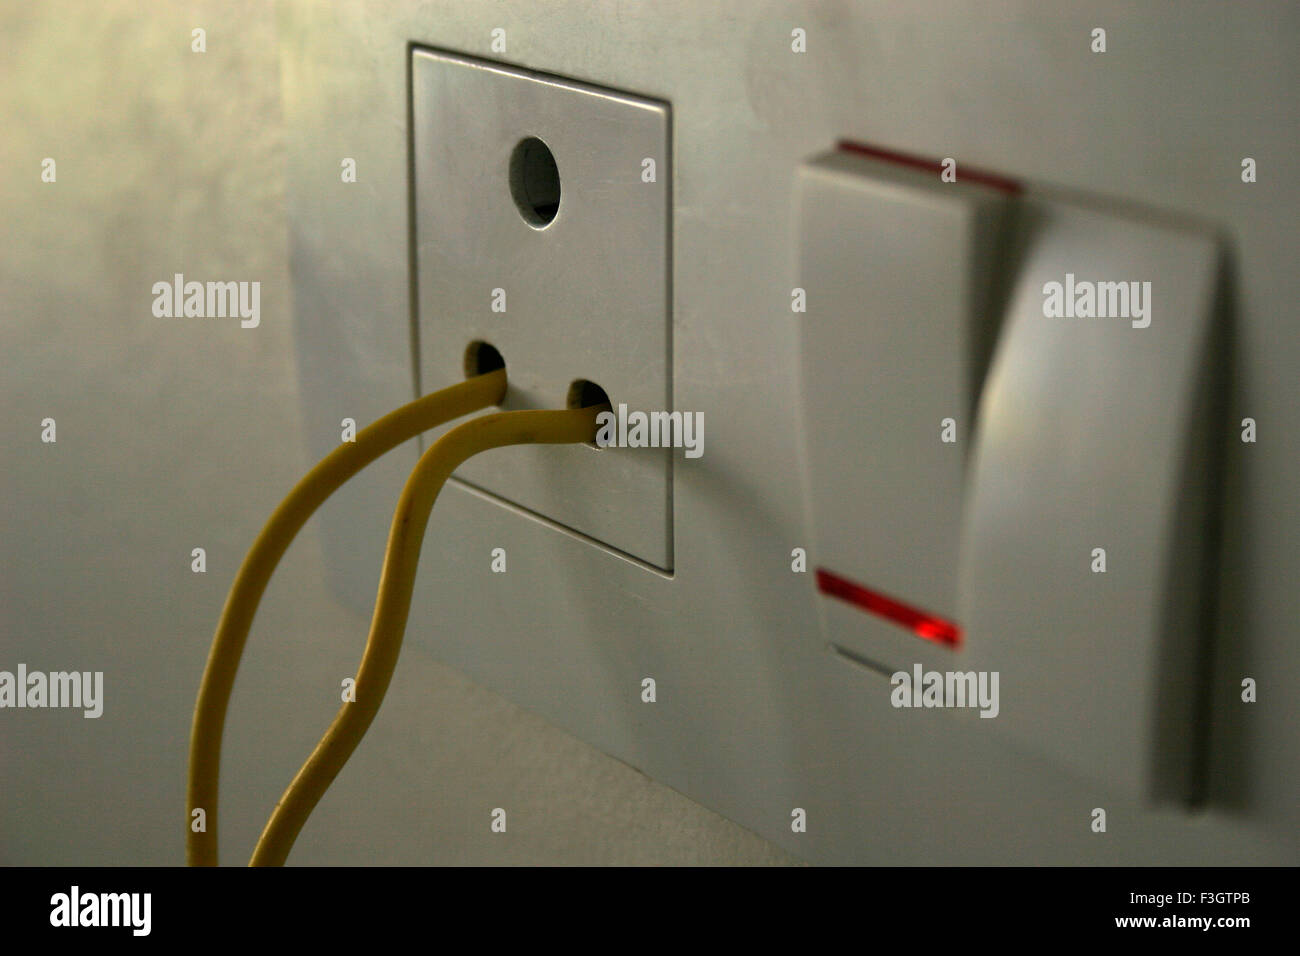 Yellow electric wire inserted in socket without plug and with switch ...